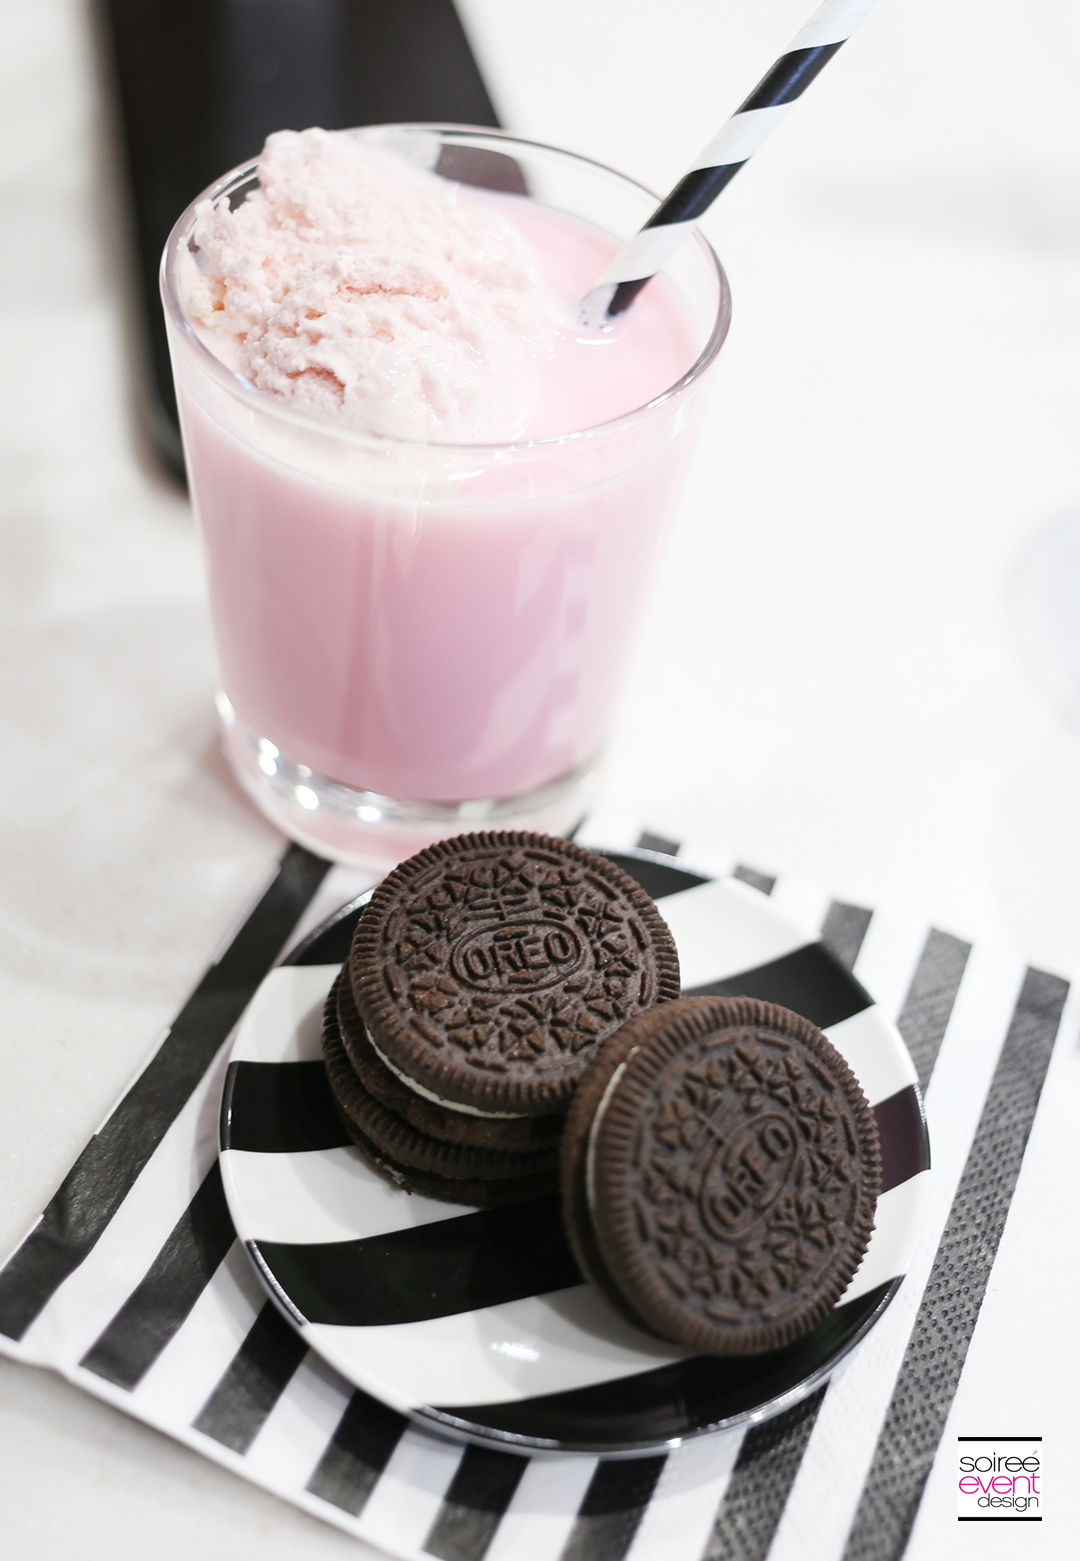 Strawberry Milk and OREO Cookies